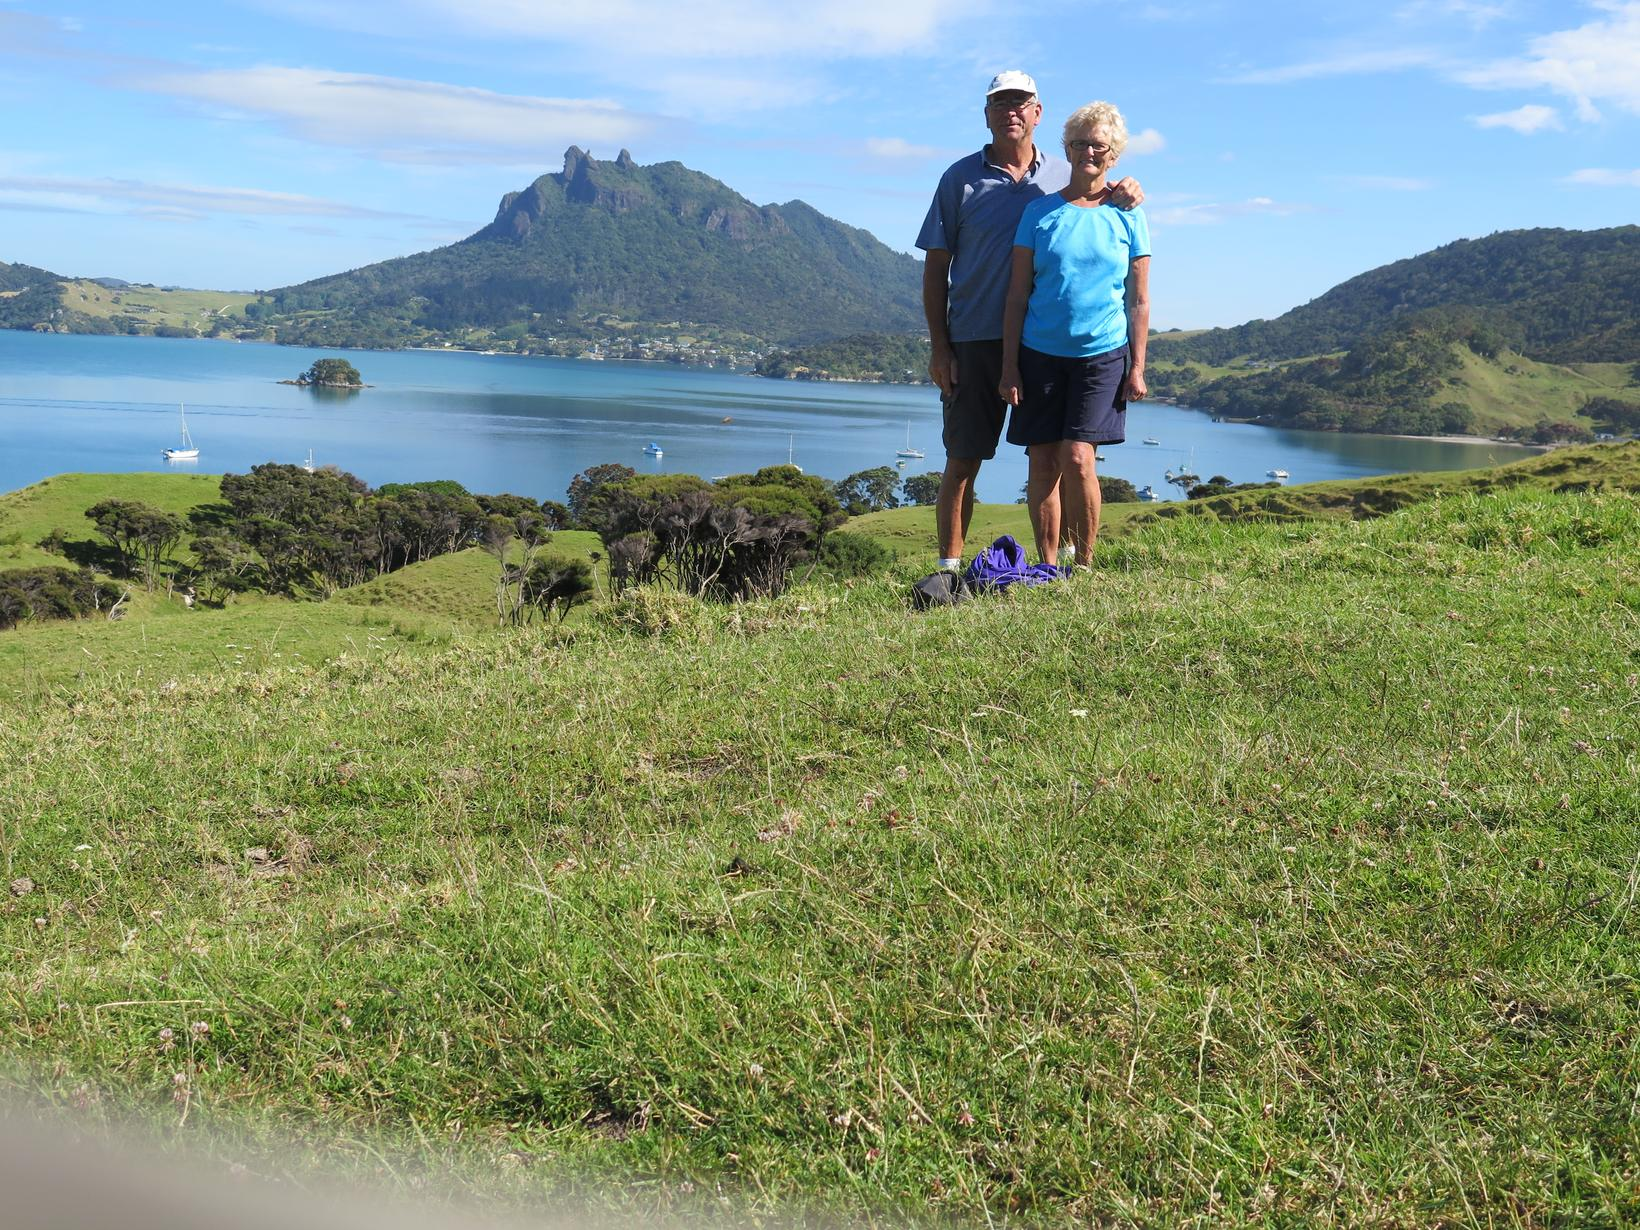 Bonnie & Harvey from Whangarei Heads, New Zealand